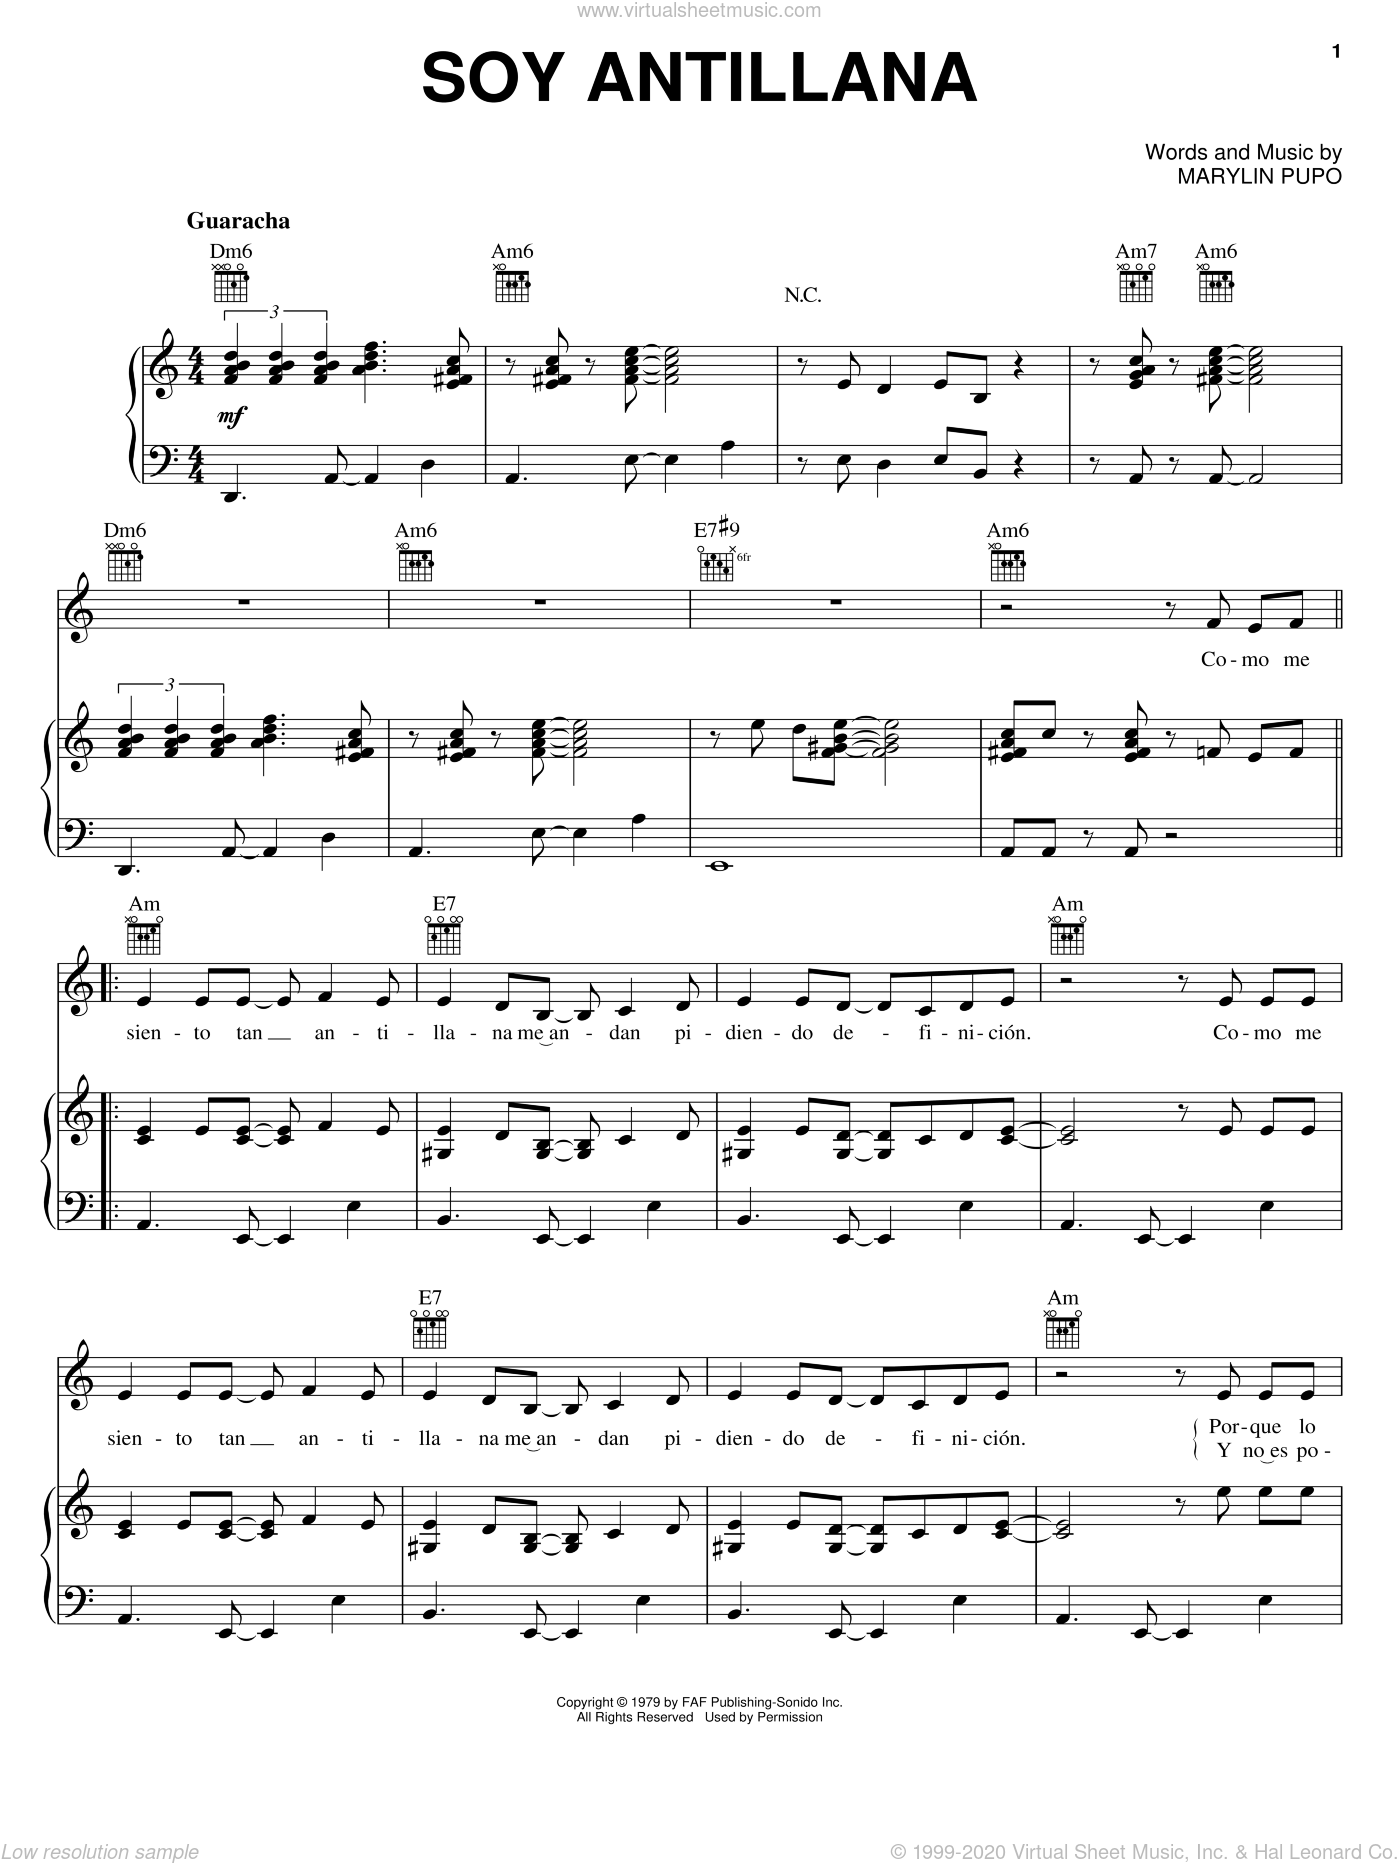 Soy Antillana sheet music for voice, piano or guitar by Marylin Pupo